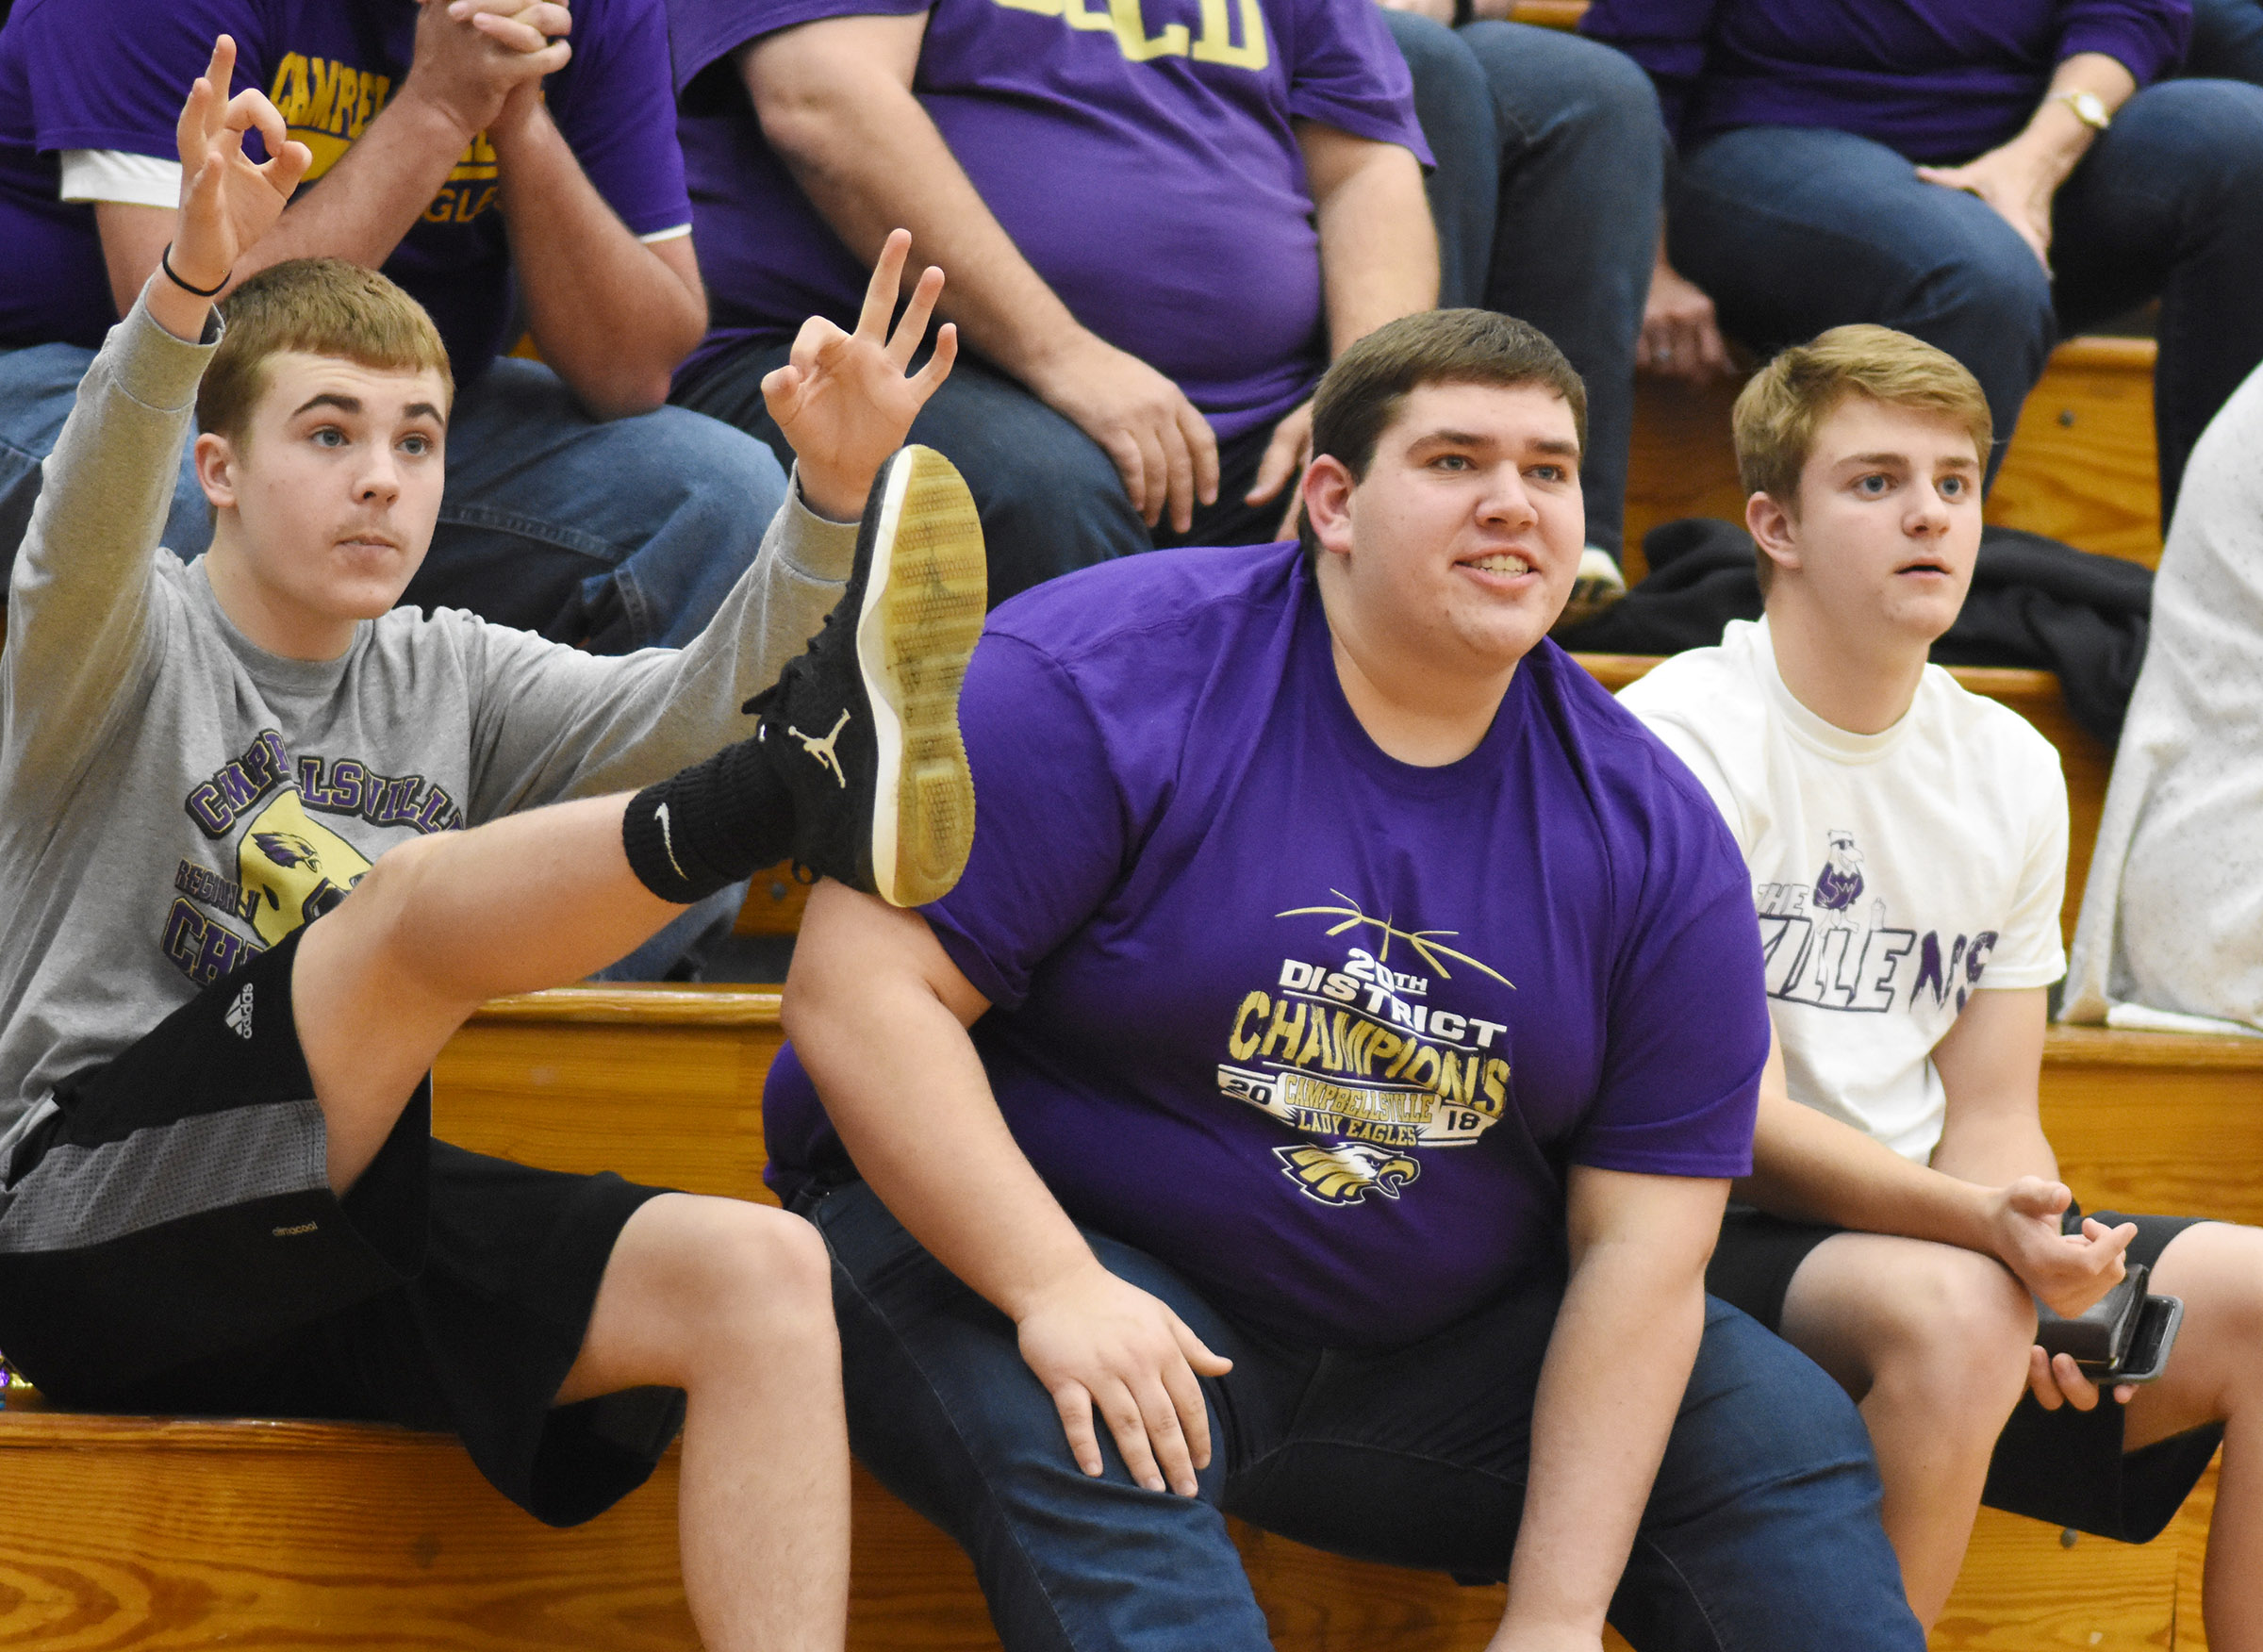 From left, CHS sophomore Tyler Gribbins and seniors Ryan Wiedewitsch and Alex Doss react to a shot.